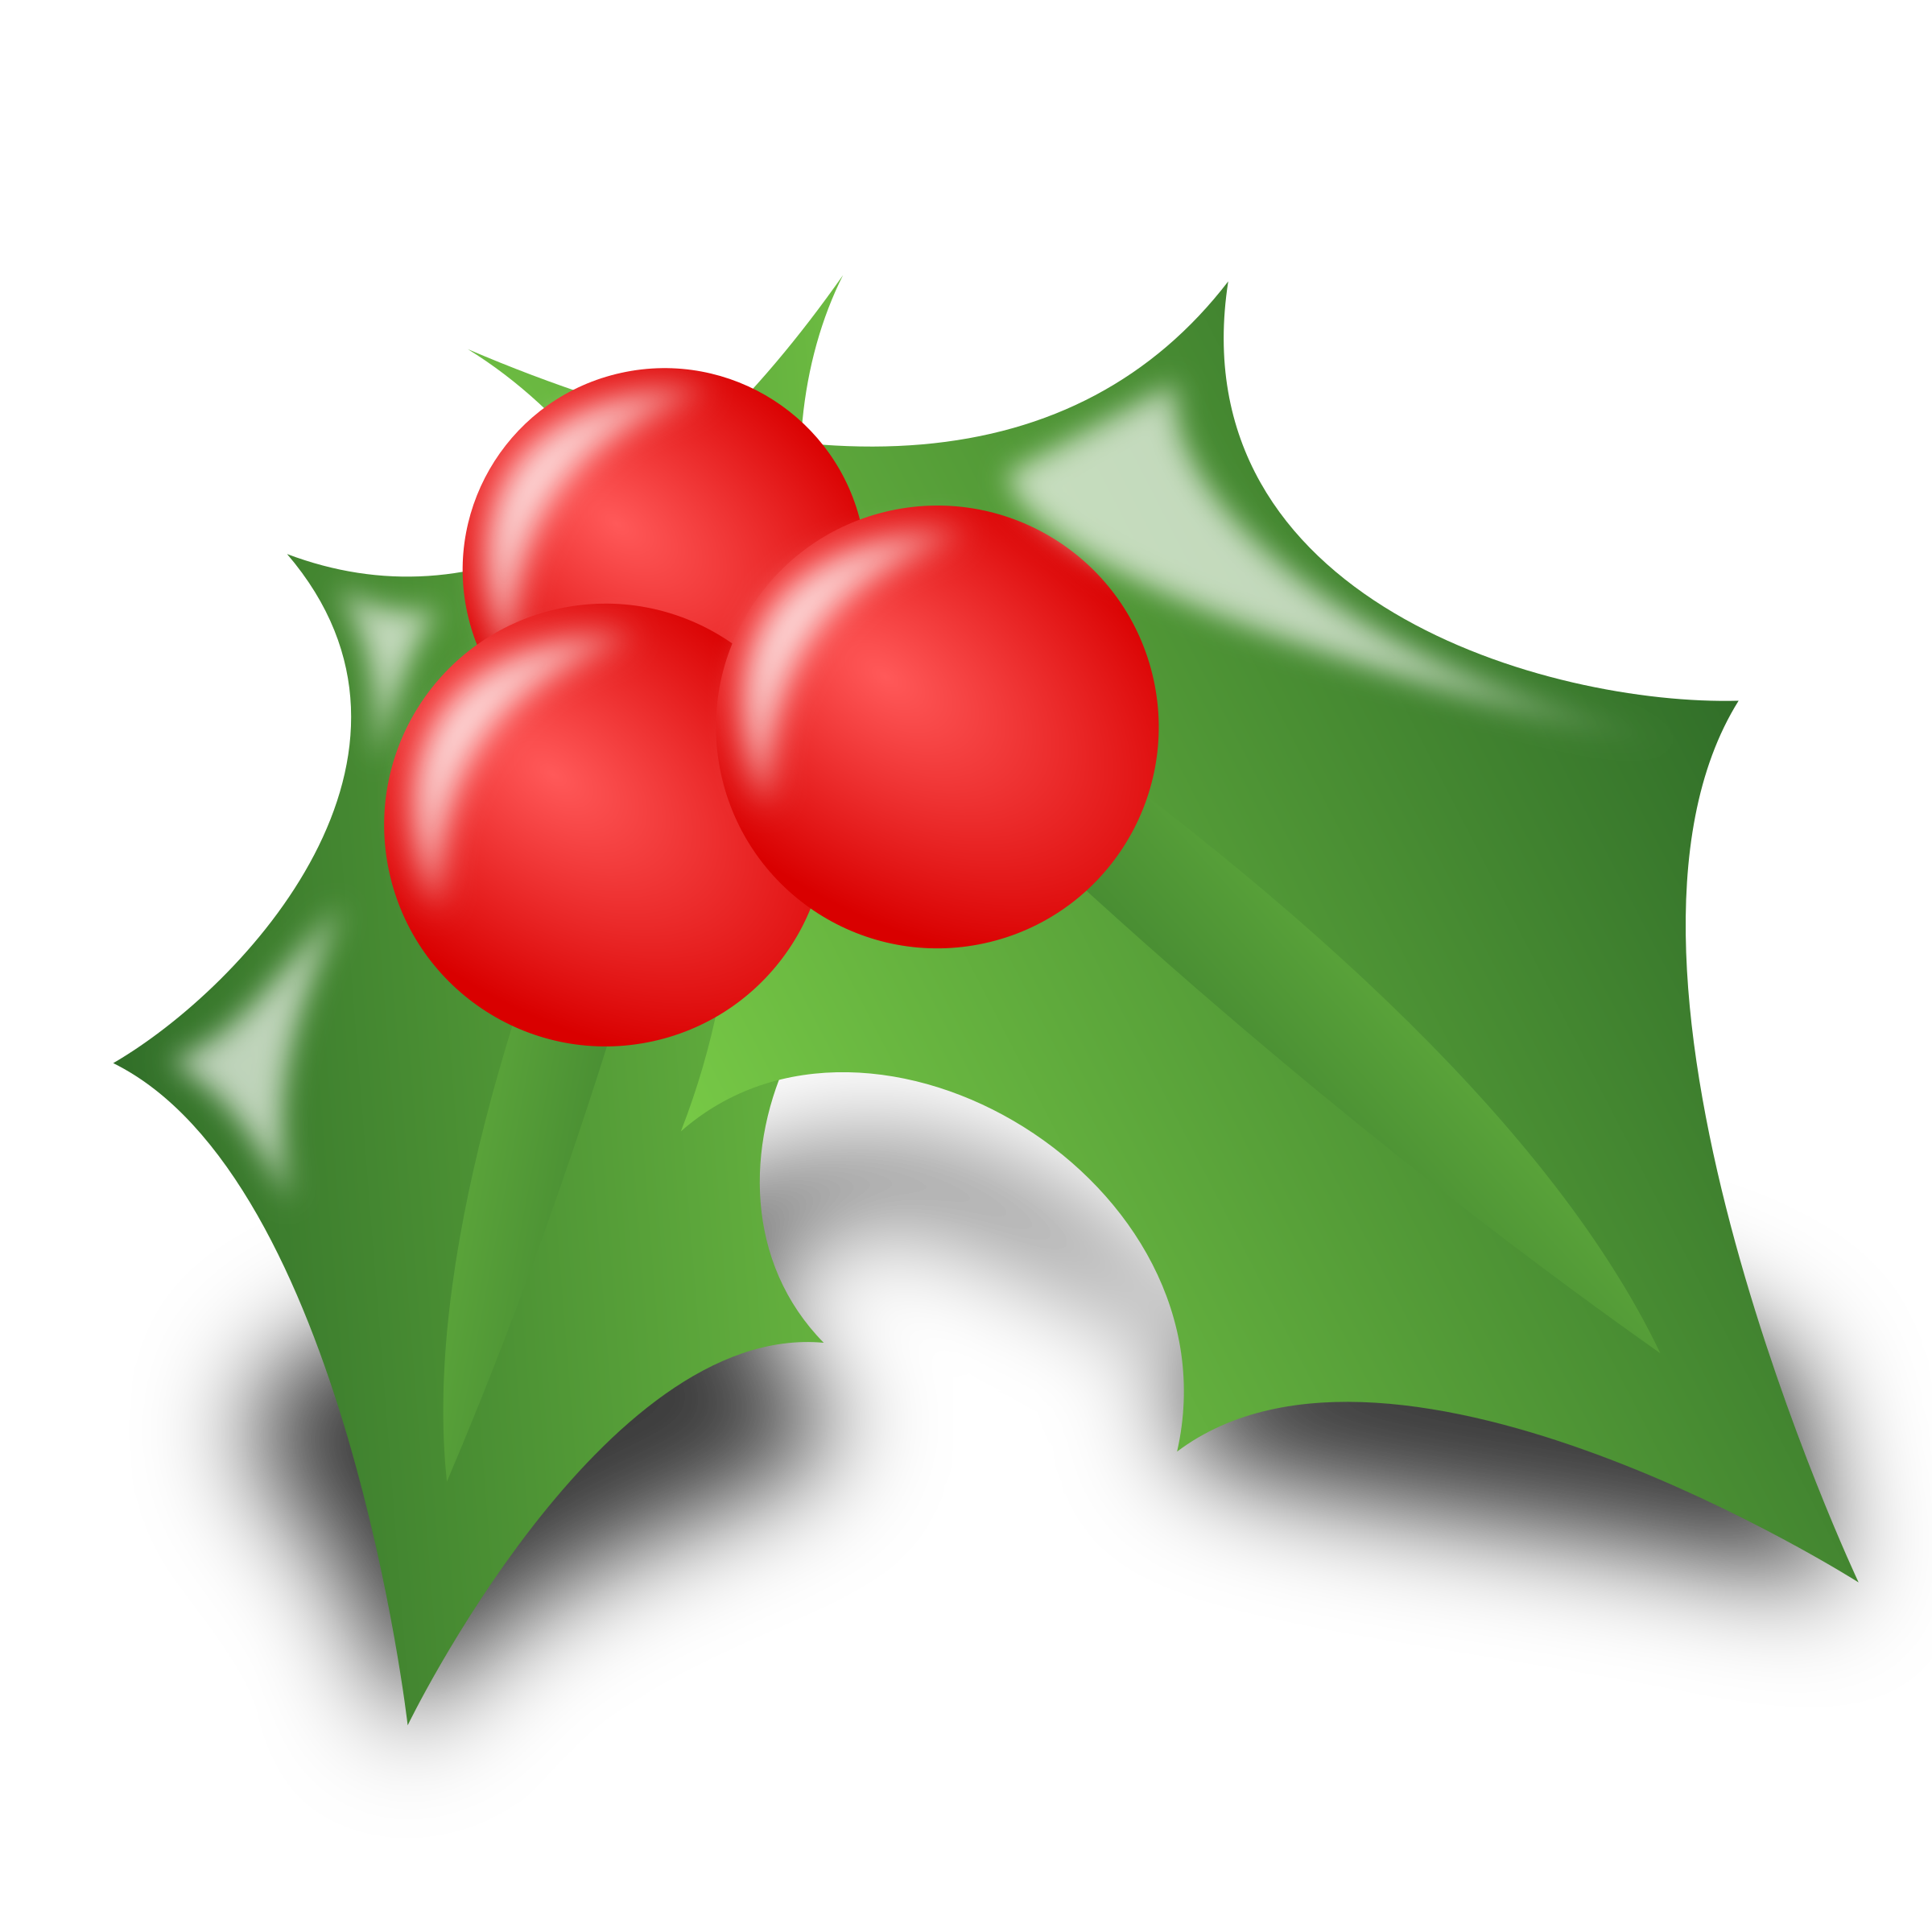 Icon big image png. Email clipart christmas